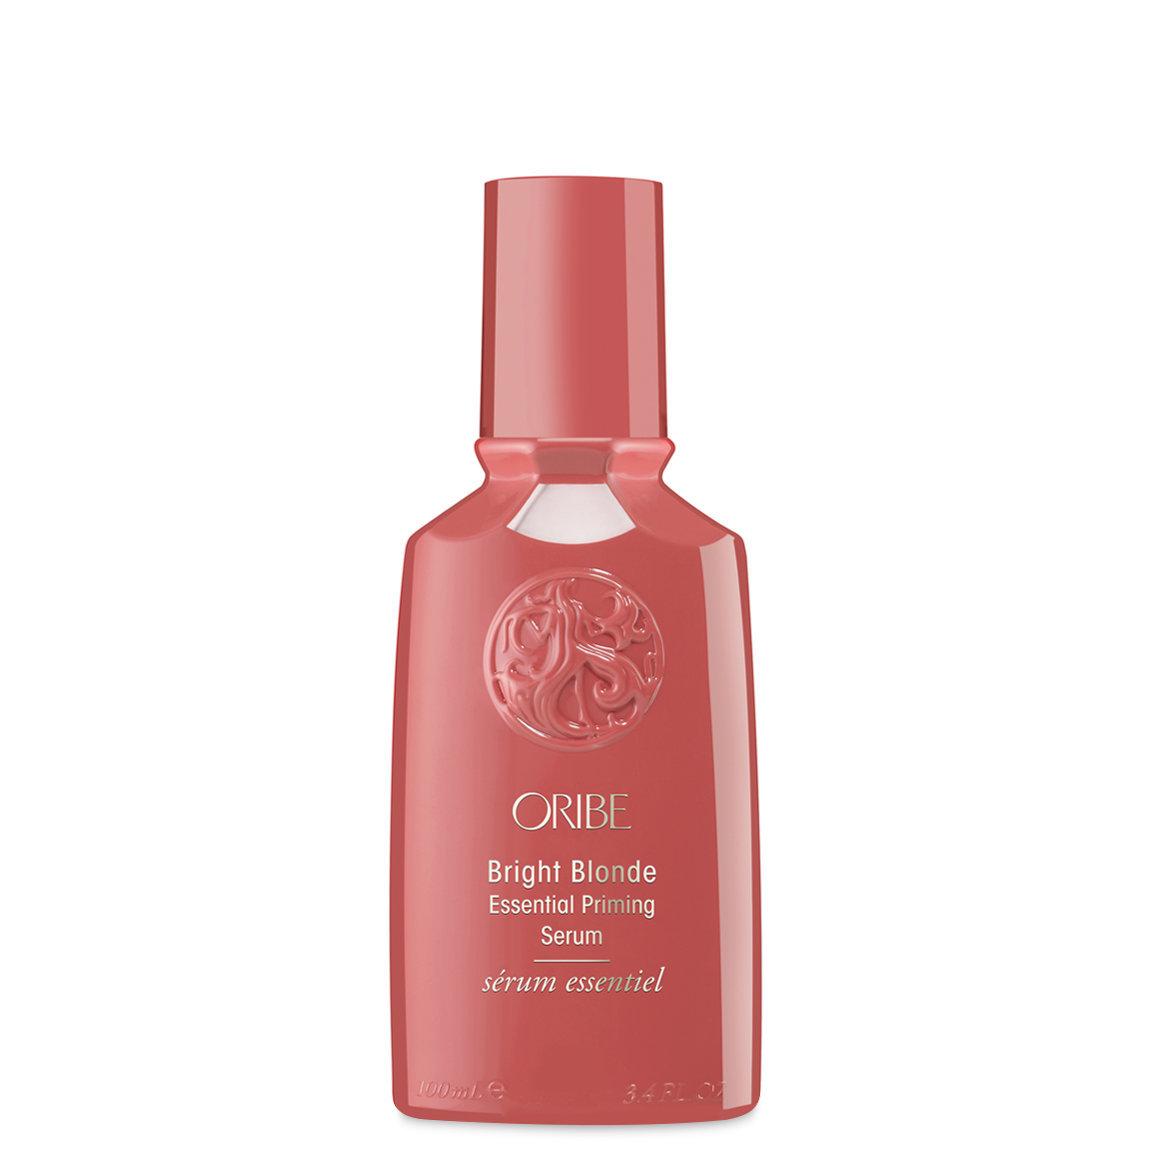 Oribe Bright Blonde Essential Priming Serum alternative view 1.